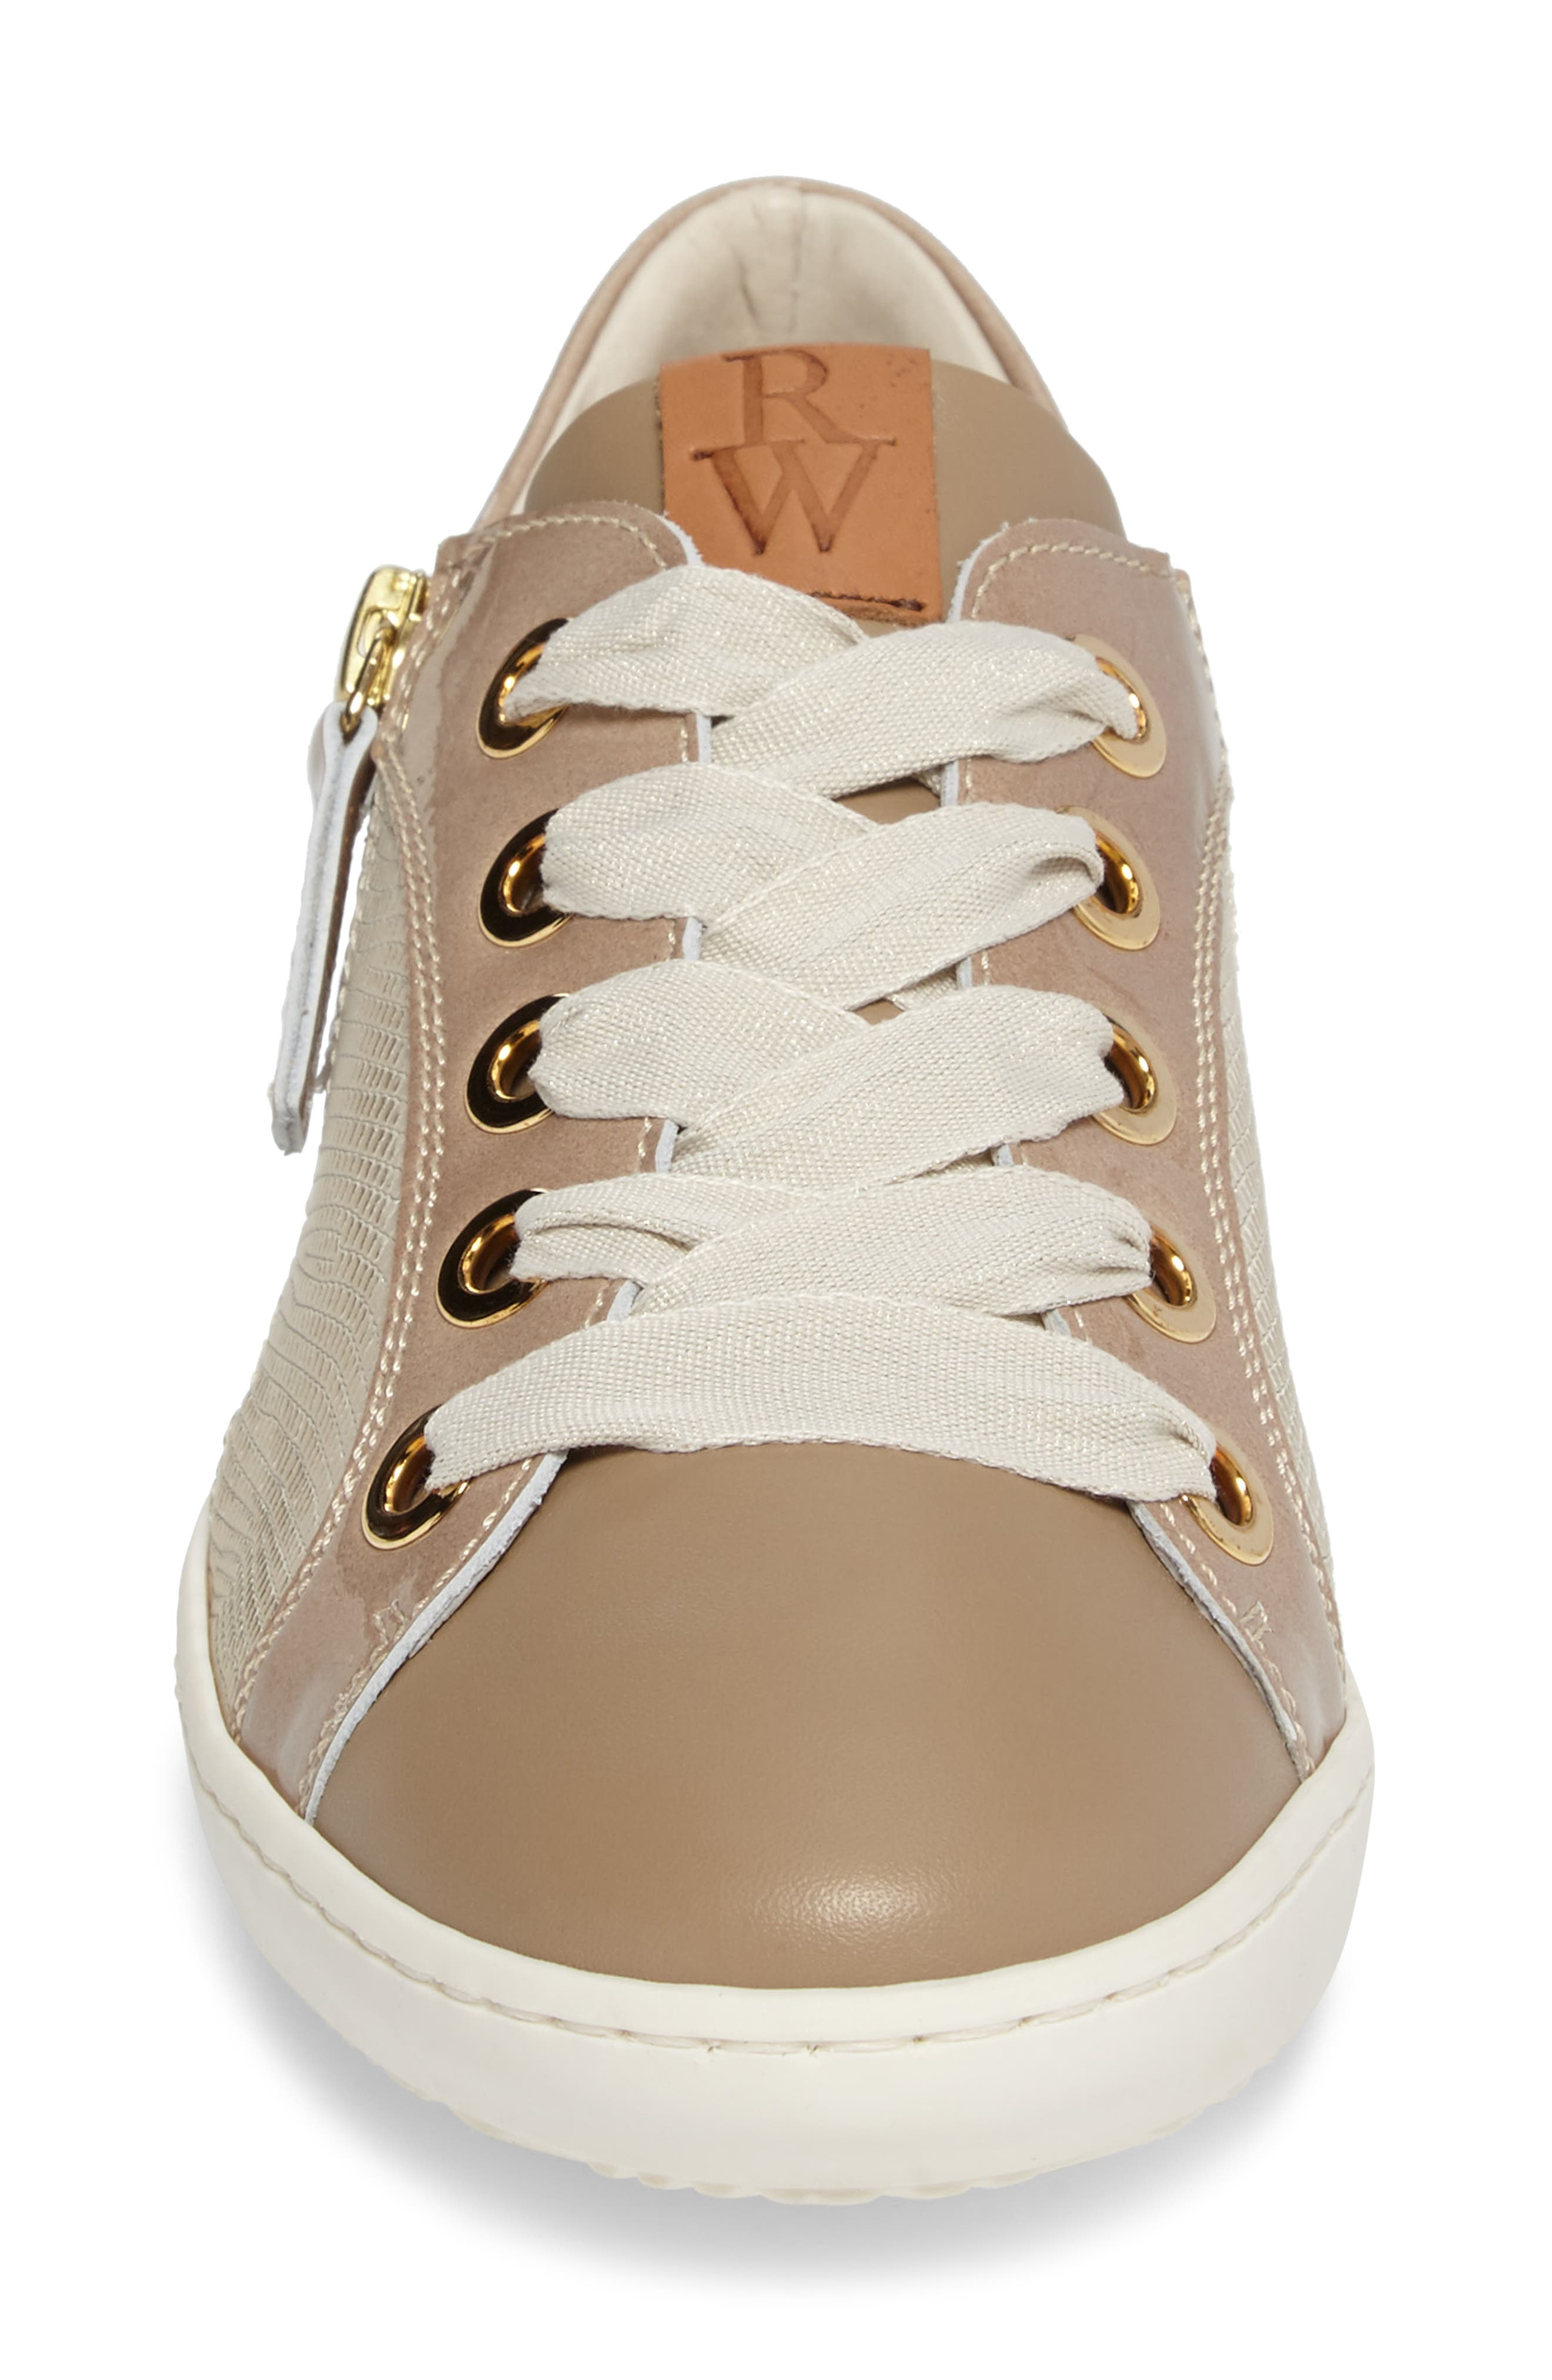 May Sneaker,                             Alternate thumbnail 4, color,                             Nude/ Platino Leather